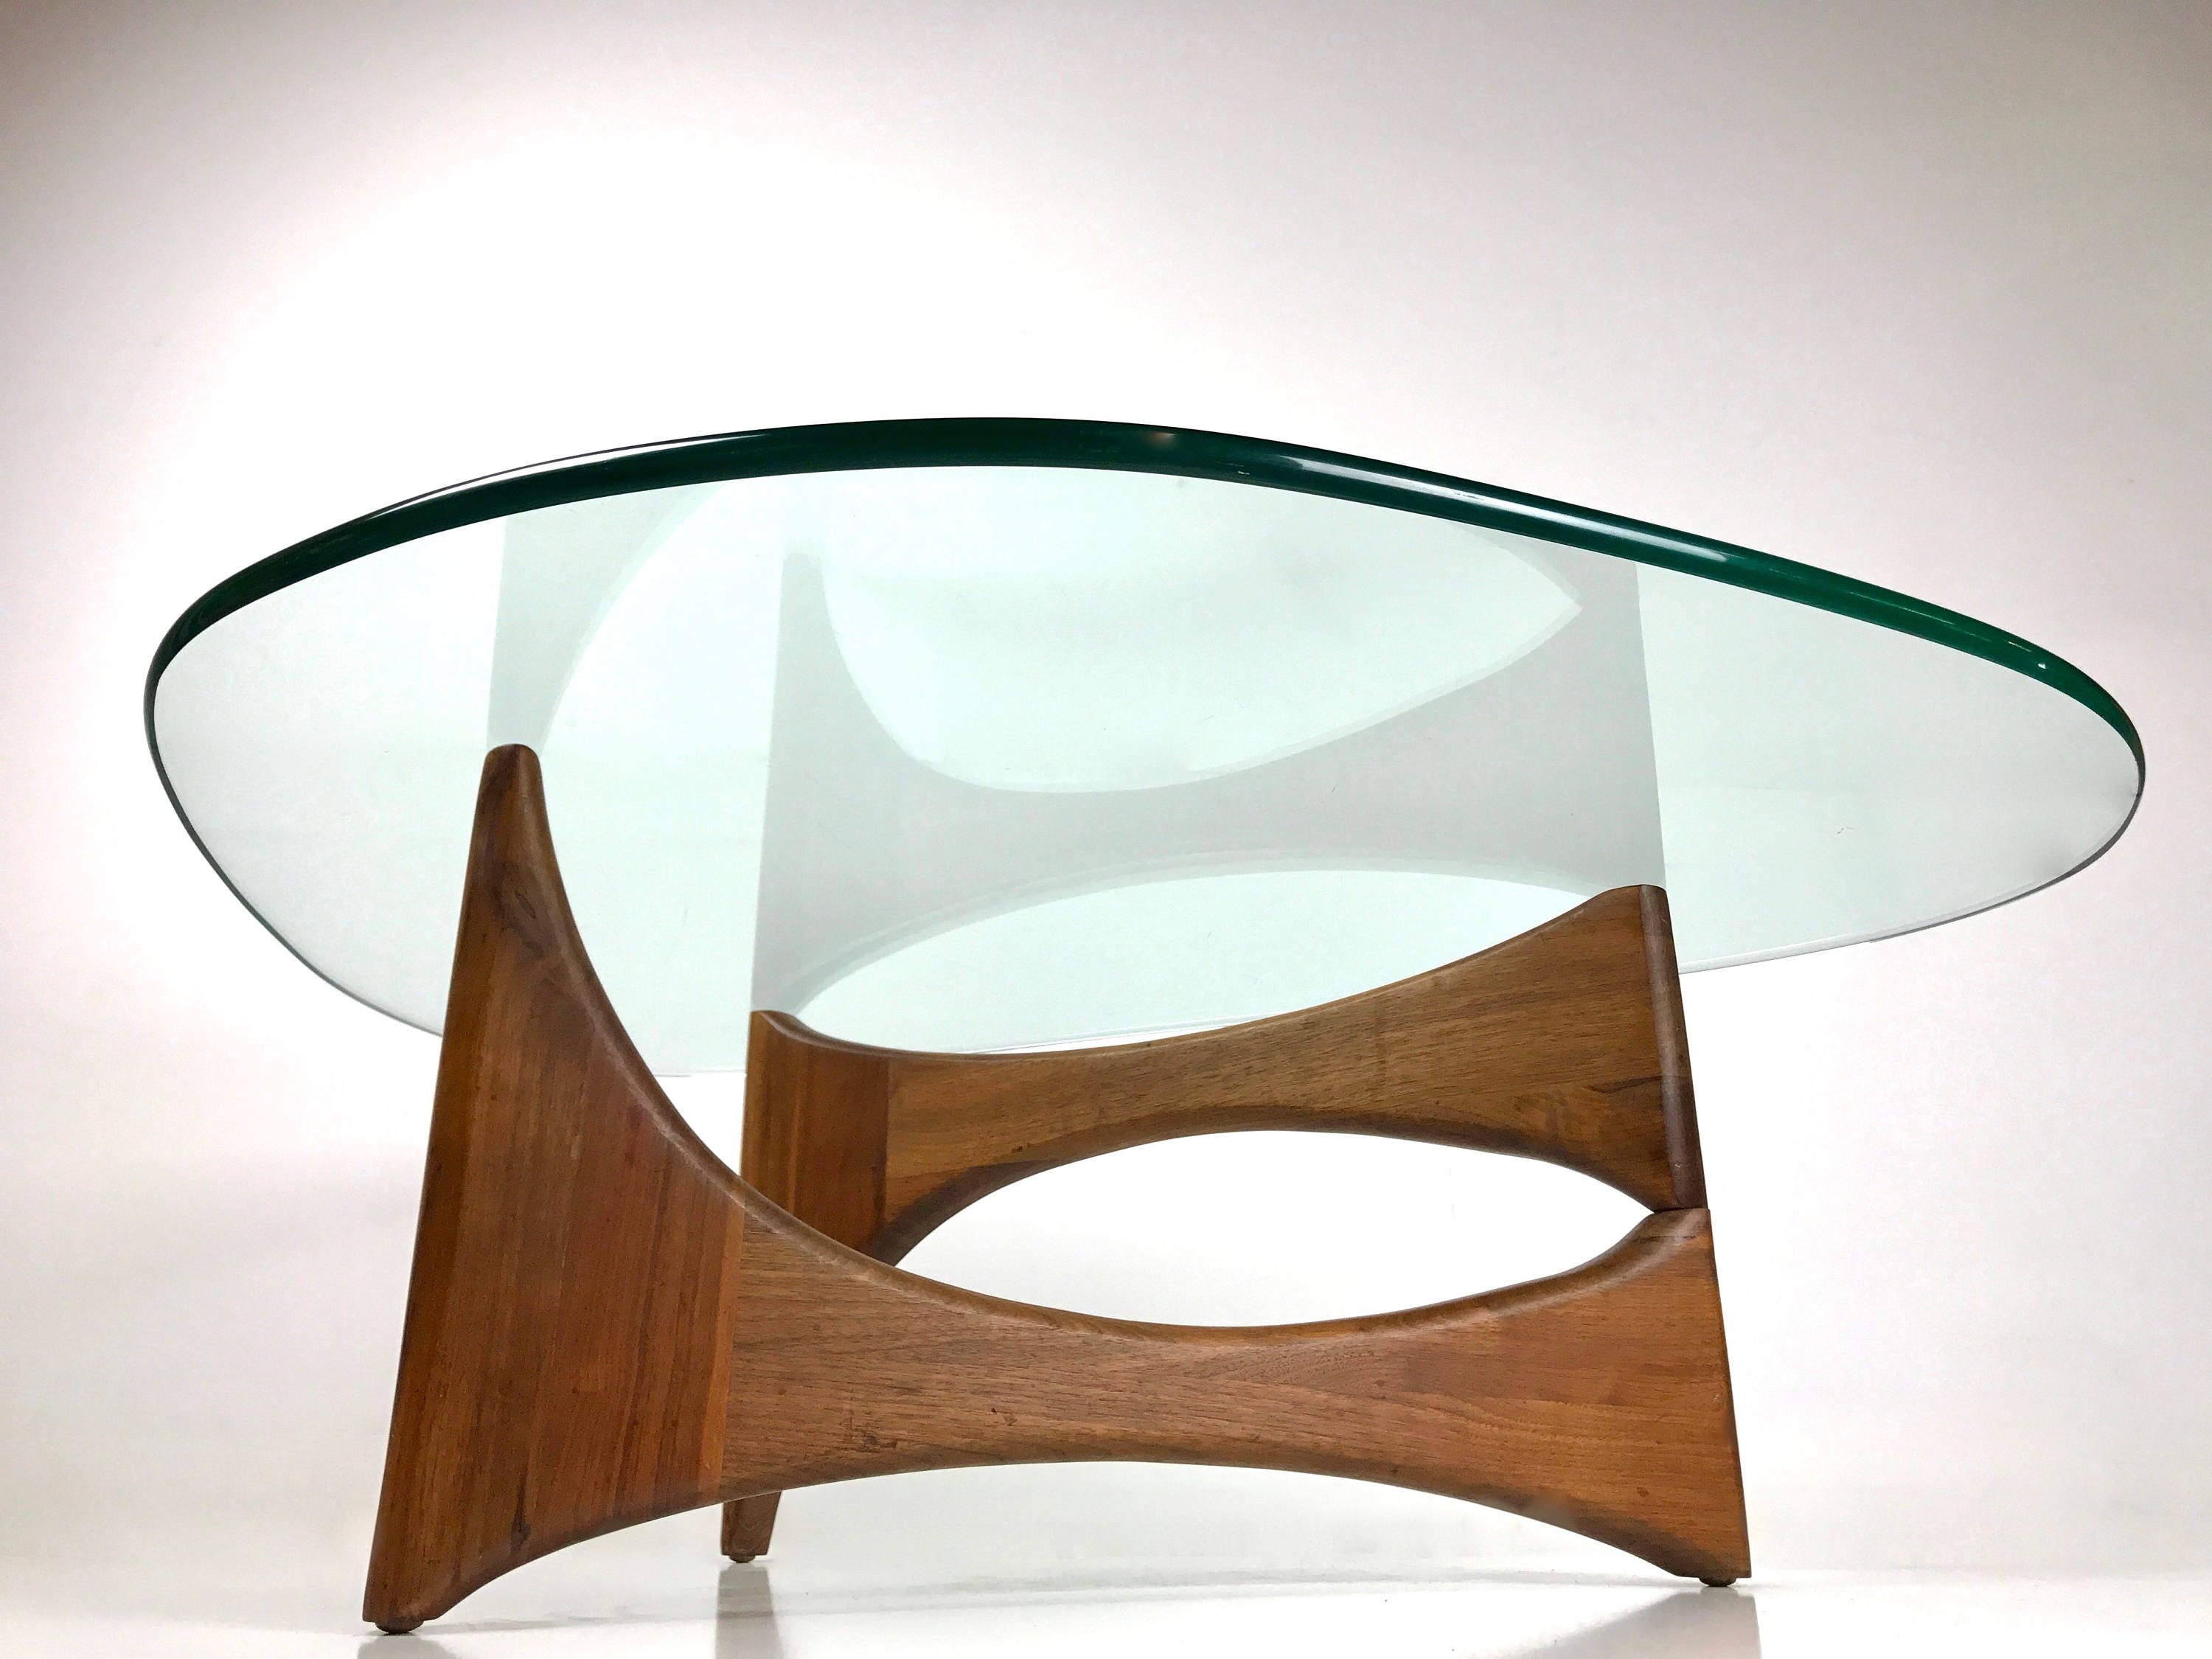 59a3380e0e88 Sold Mid Century Modern ADRIAN PEARSALL Sculpted Teak Biomorphic Coffee  Table NOGUCHI Style. gallery photo ...